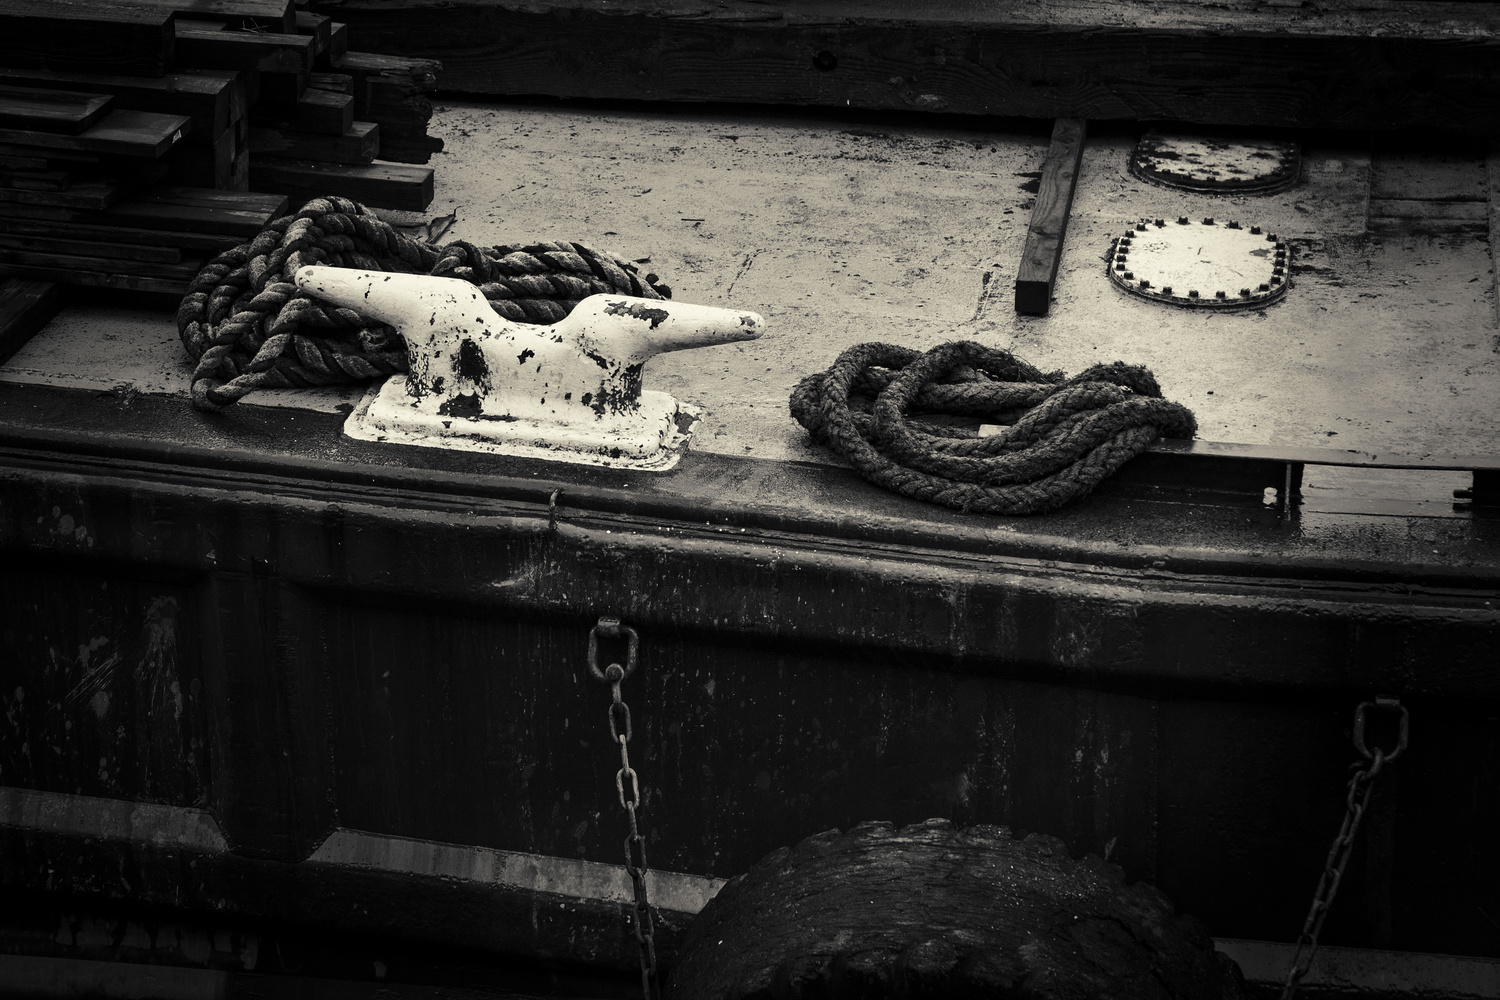 Cleat and Mooring Lines by Gary Horsfall